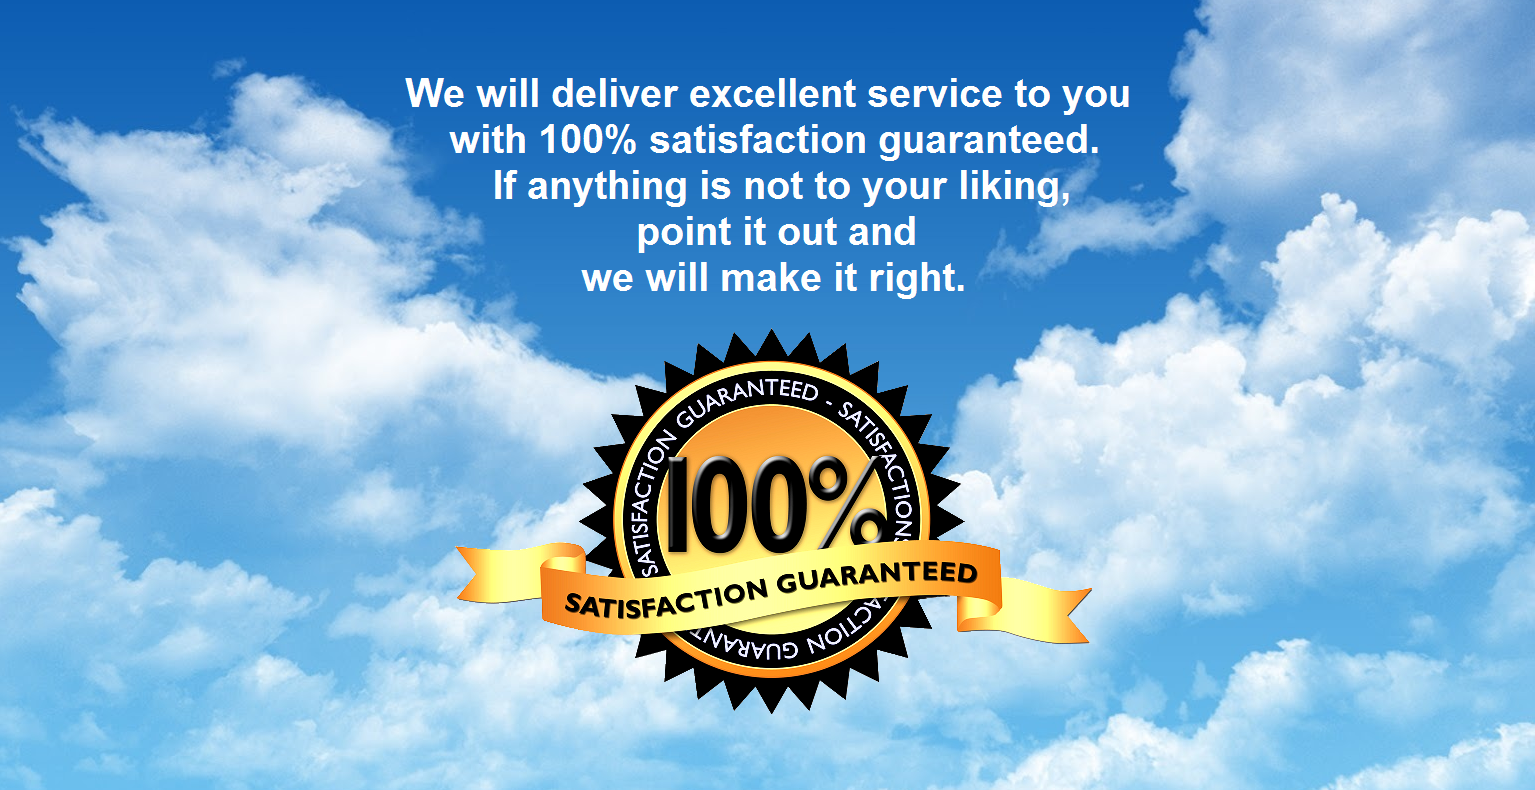 100% Satifaction Guaranteed image for website - PNG.png